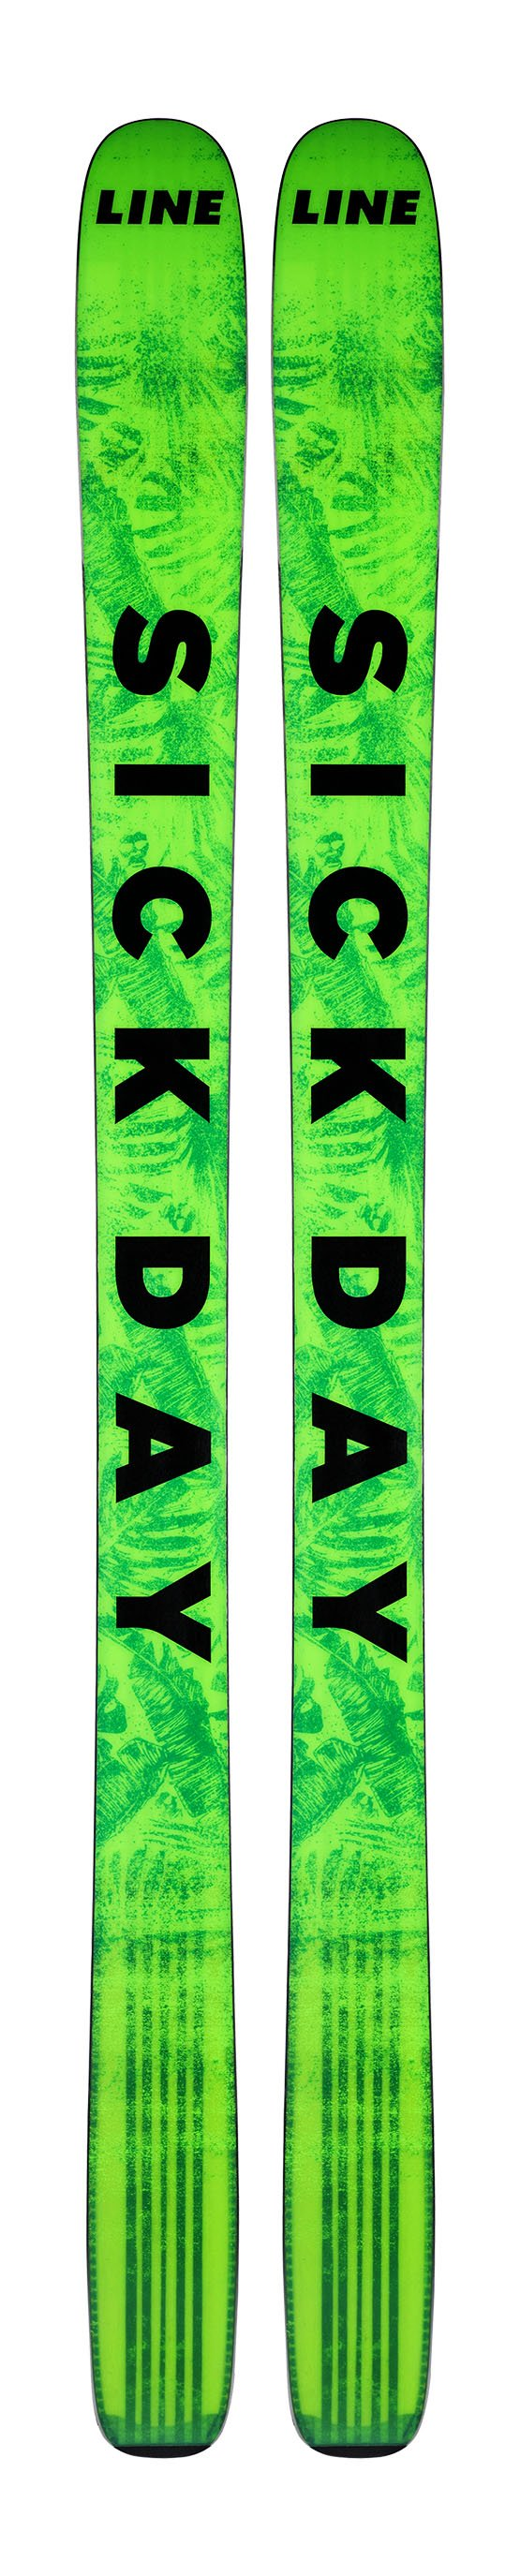 Line Sick Day 104 Skis 2020